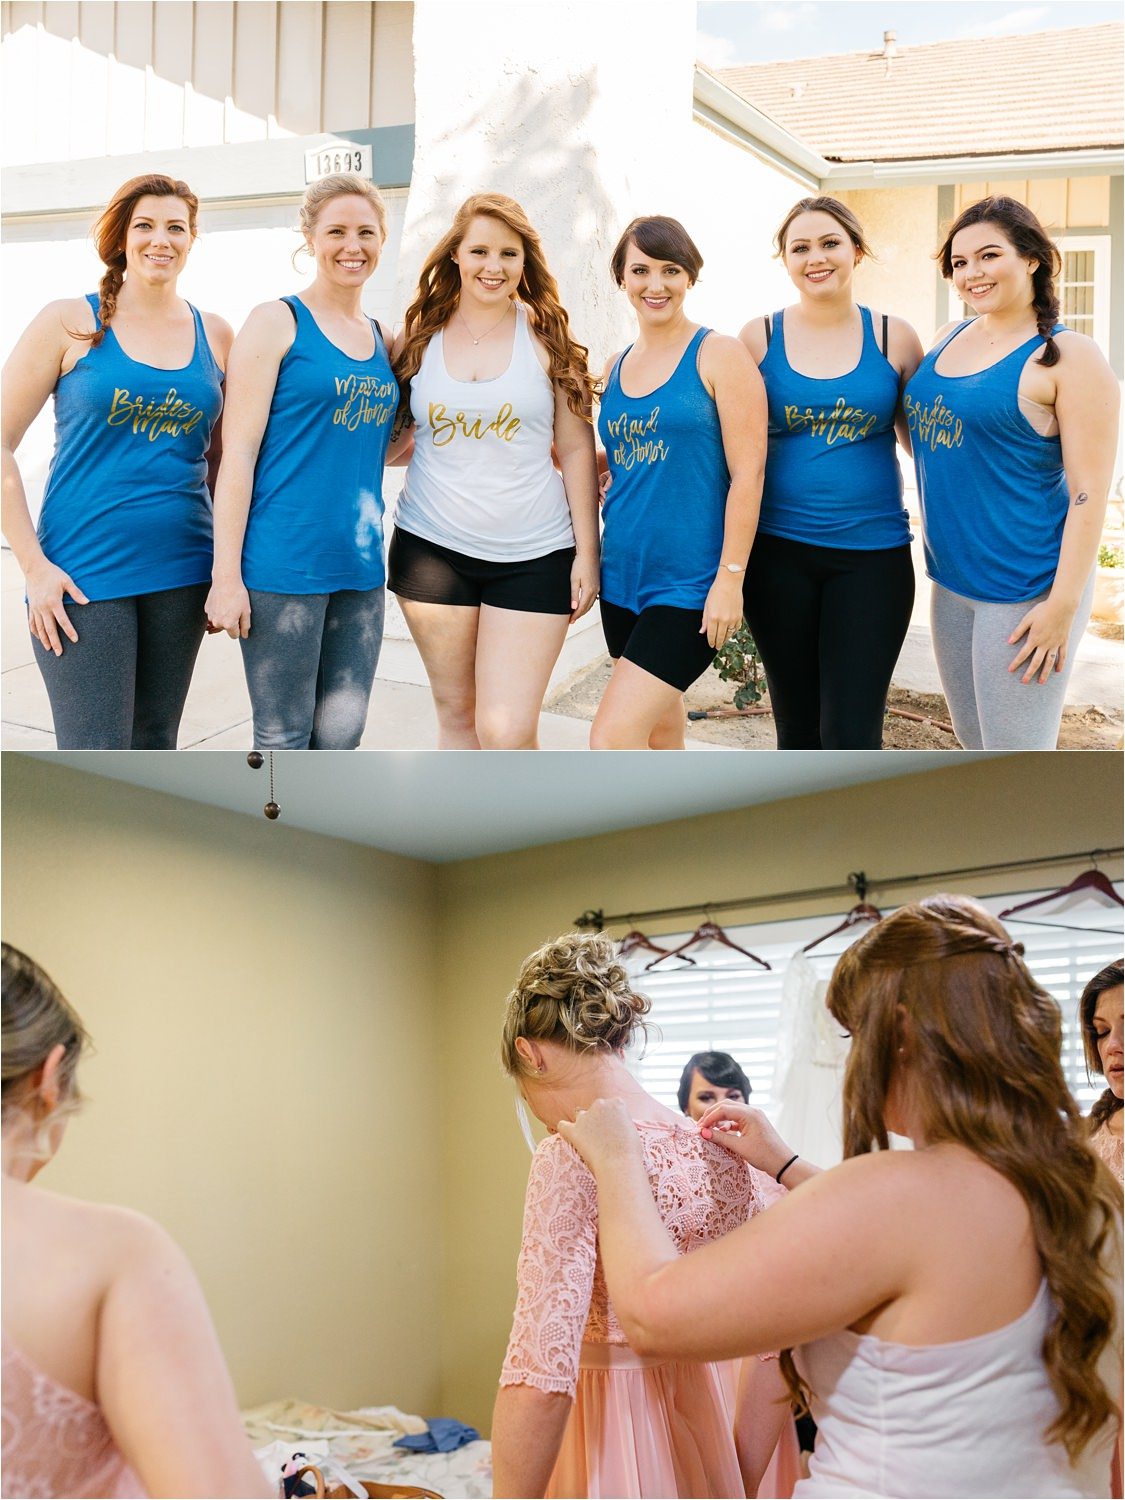 Bridesmaids Shirts - https://brittneyhannonphotography.com